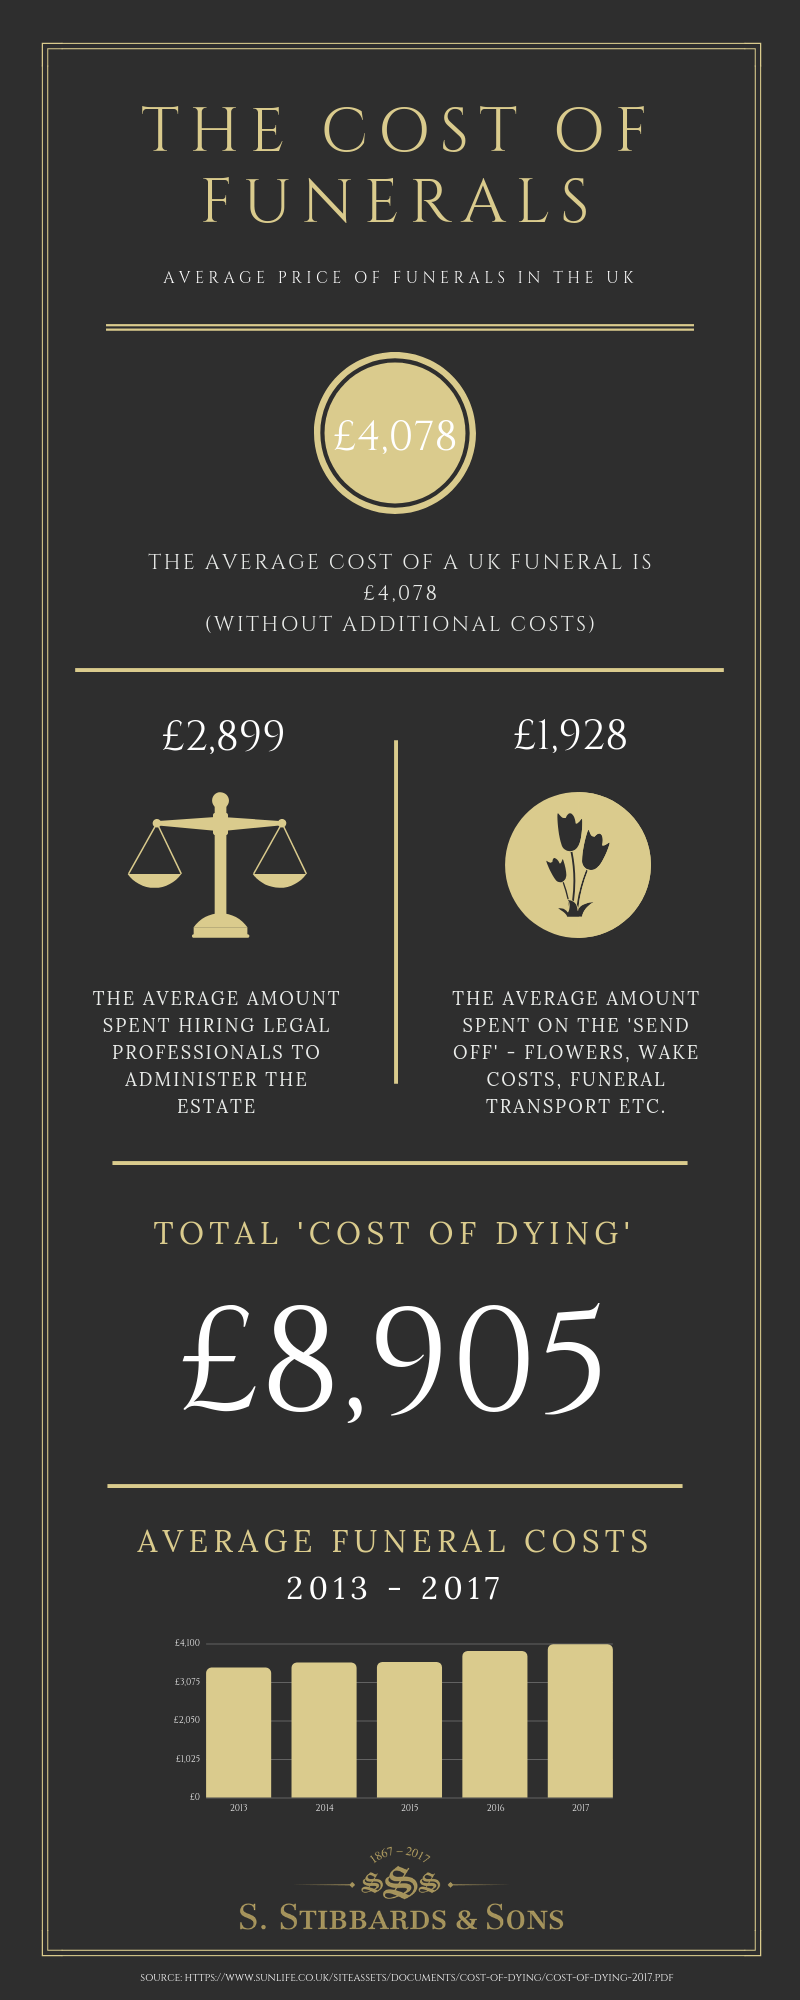 The Average Cost of Funerals